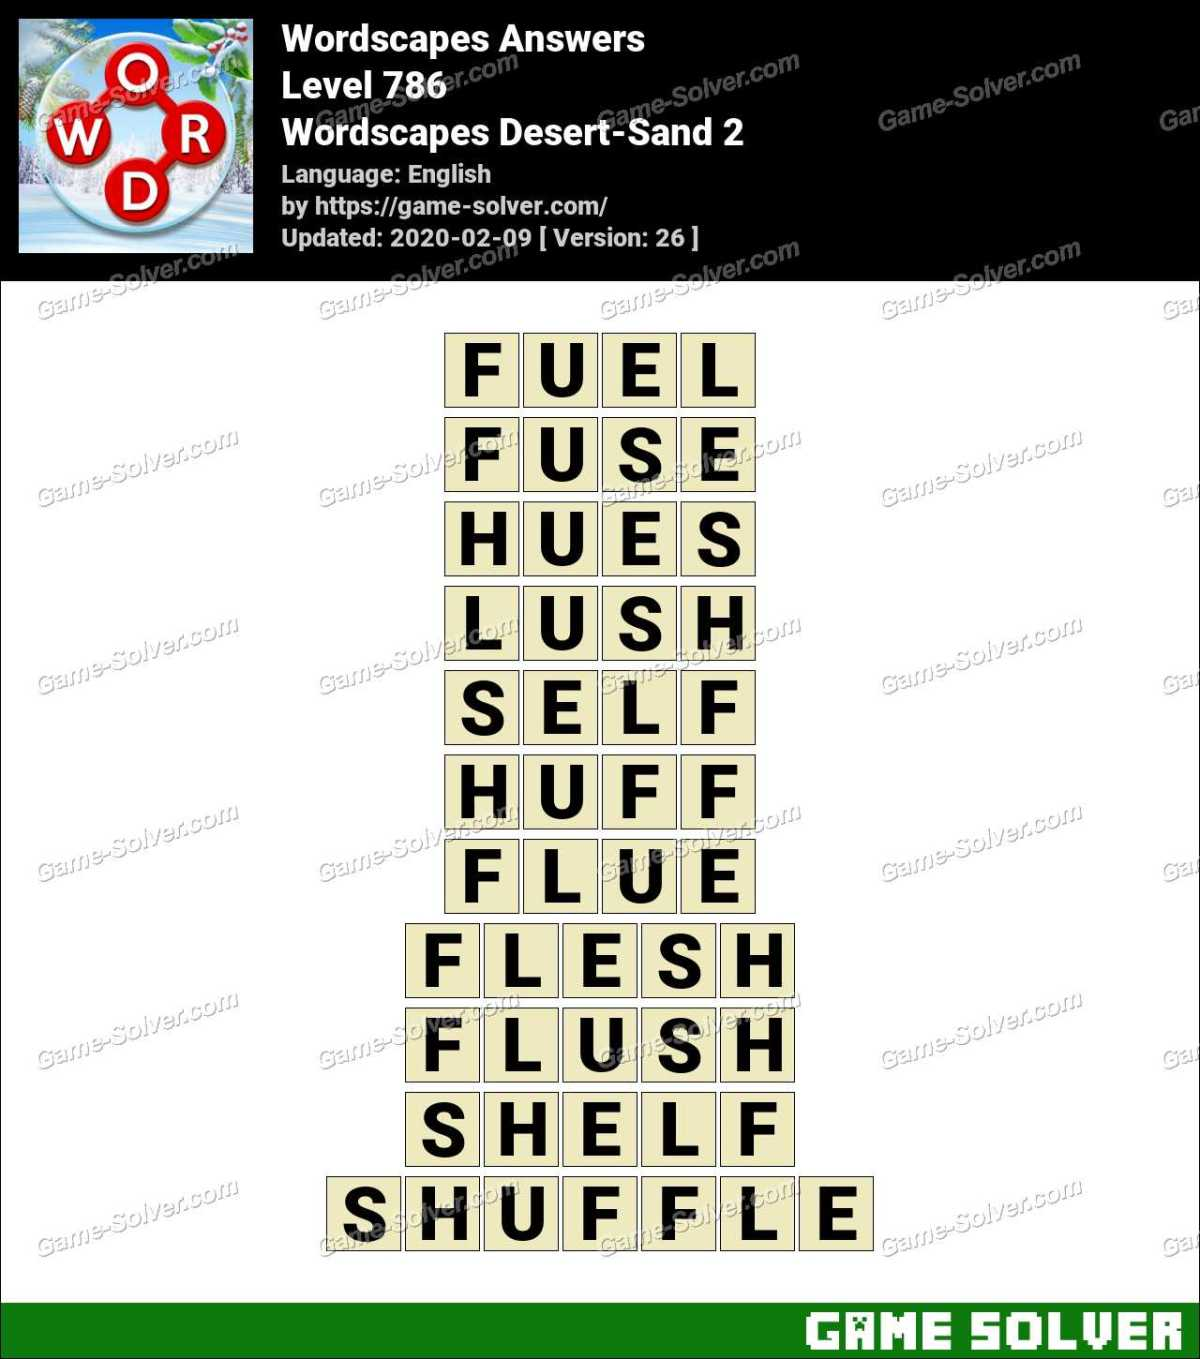 Wordscapes Desert-Sand 2 Answers